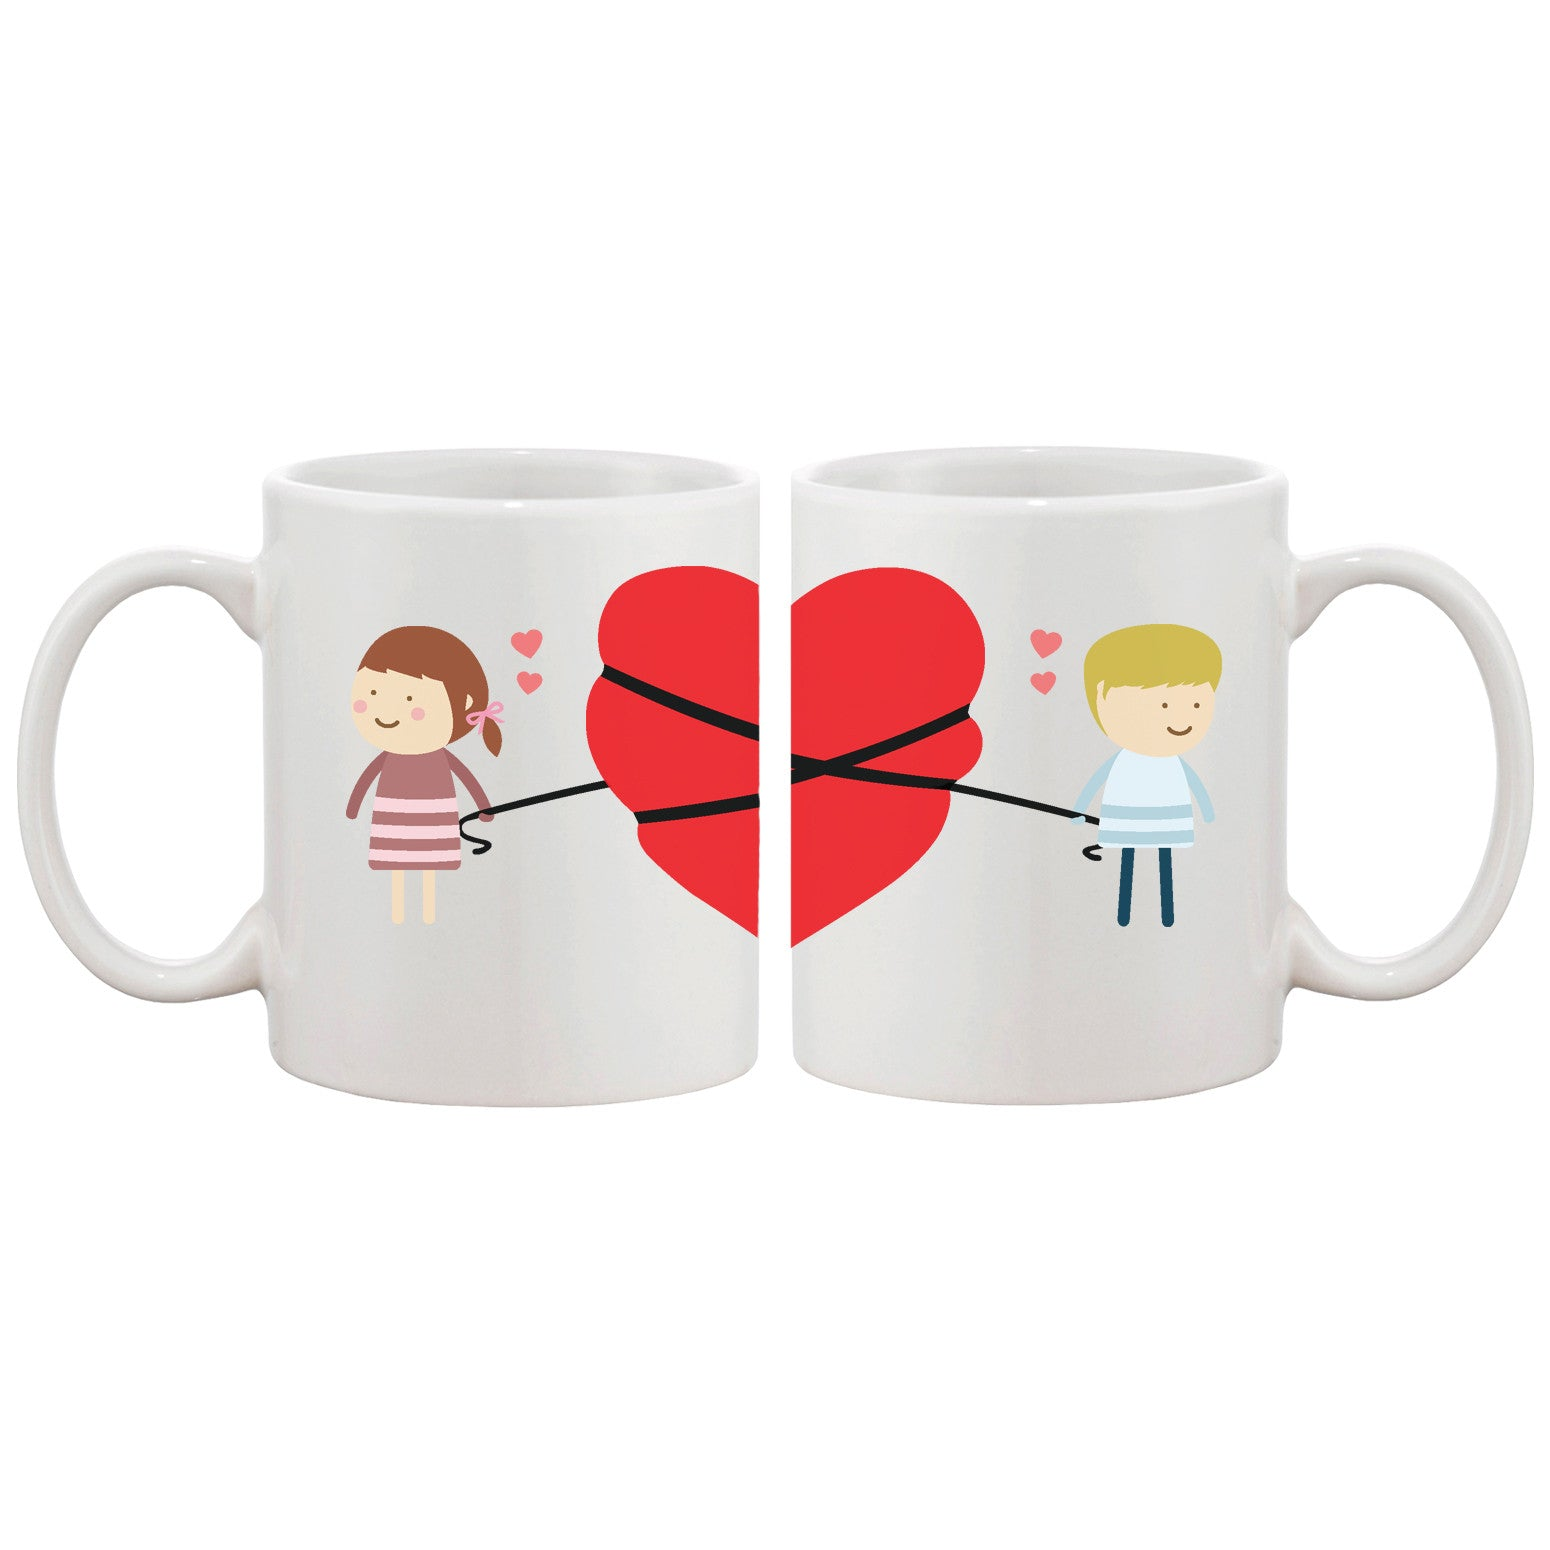 Love Connecting Couple Mugs Cute Graphic Design Coffee Mug